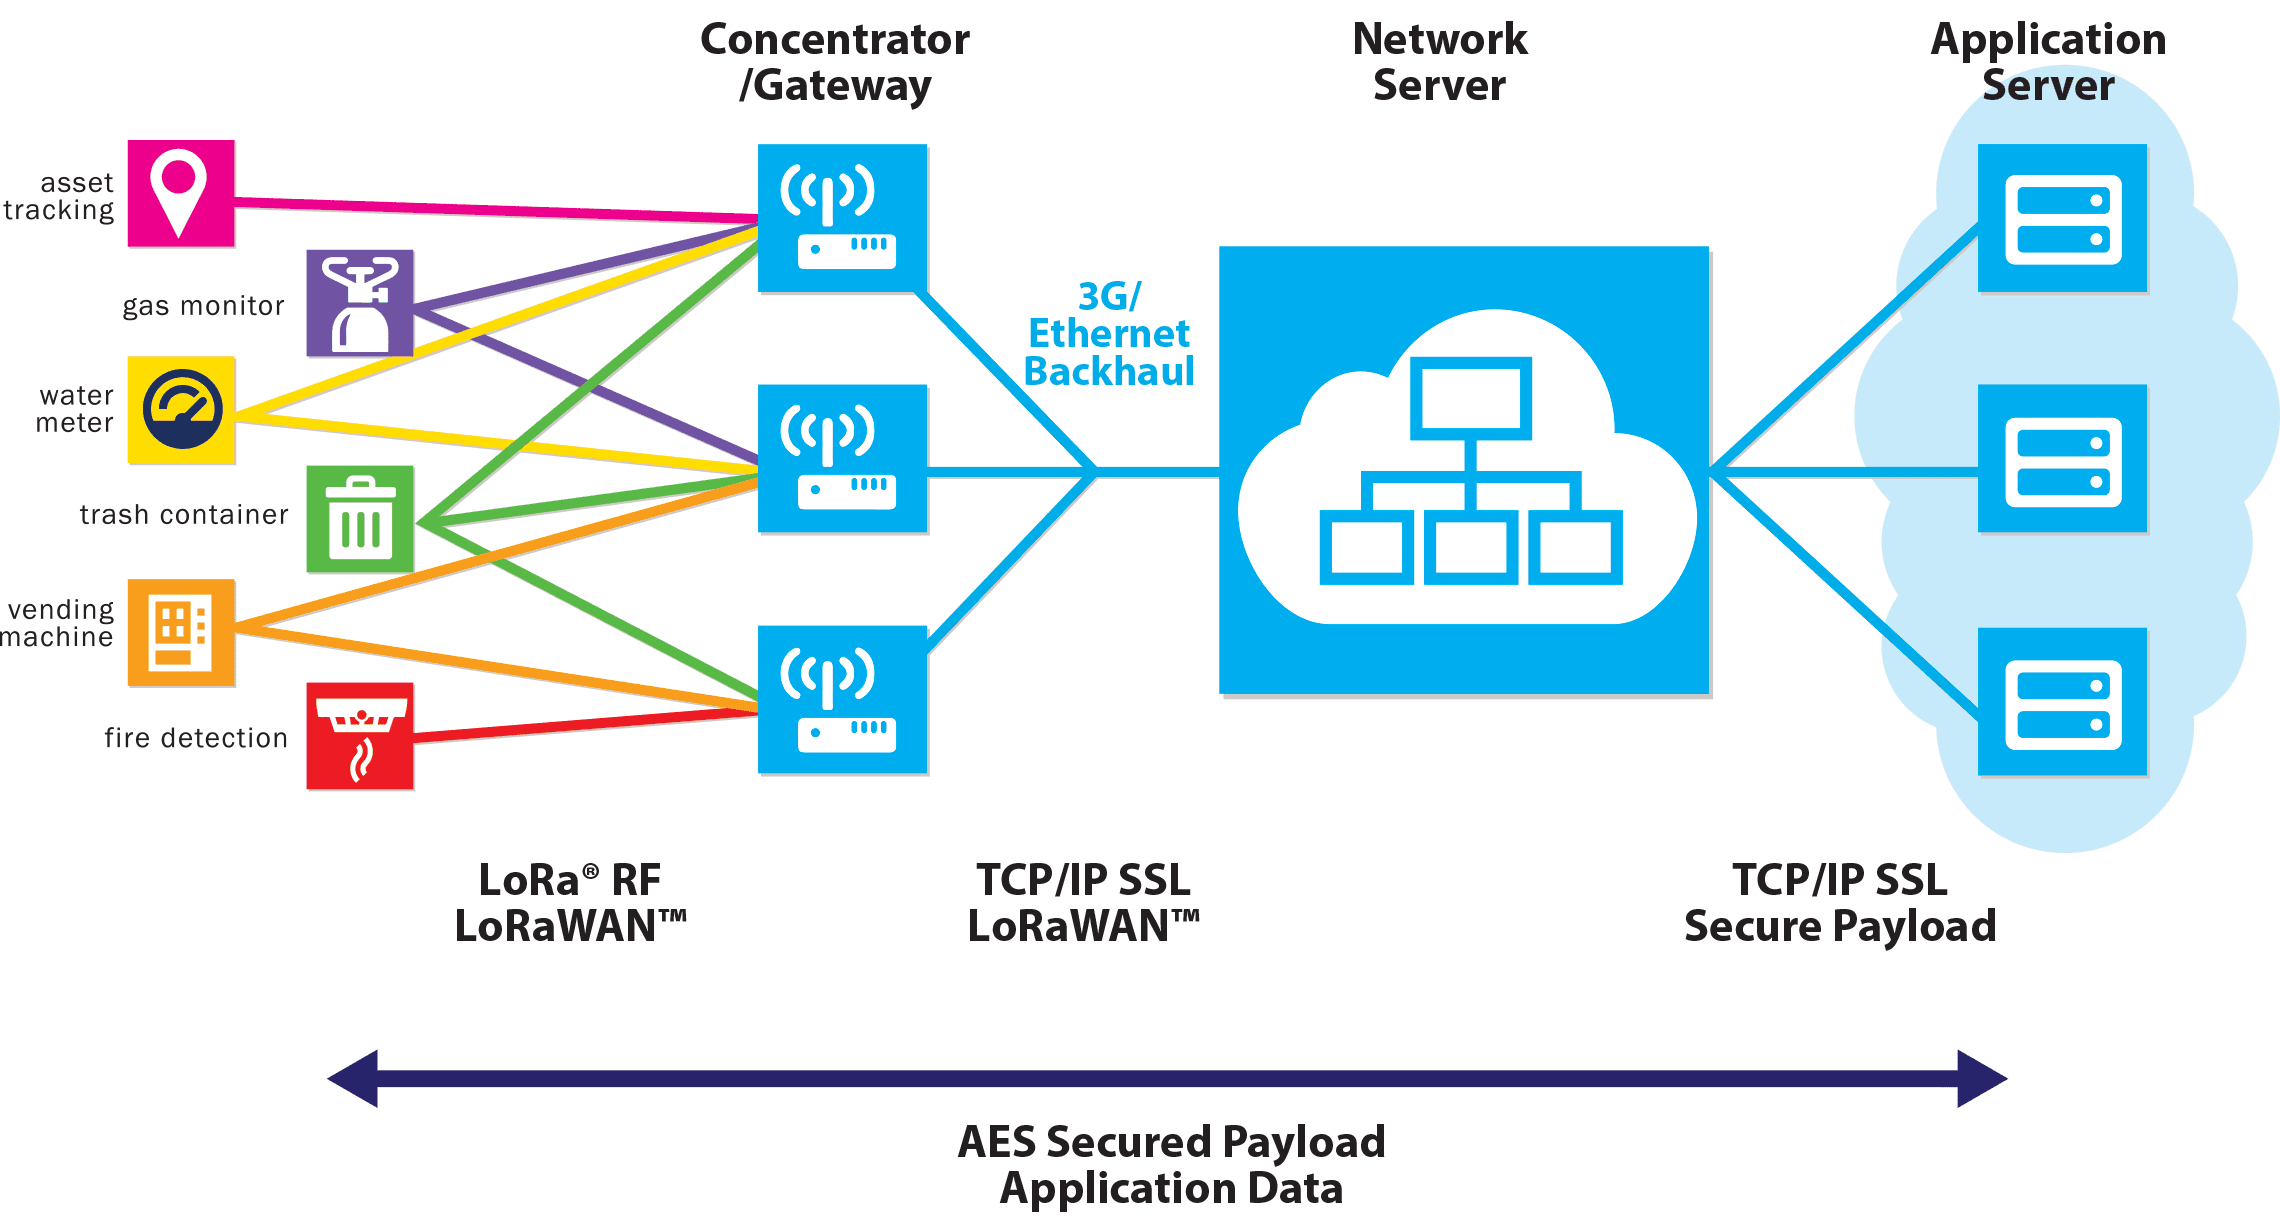 cable industry  RDK-B  LoRaWAN  LoRaWAN-Based/RDK-B Solution  semtech  LoRaWAN-Based/RDK-B  iot network  Internet of Things  News